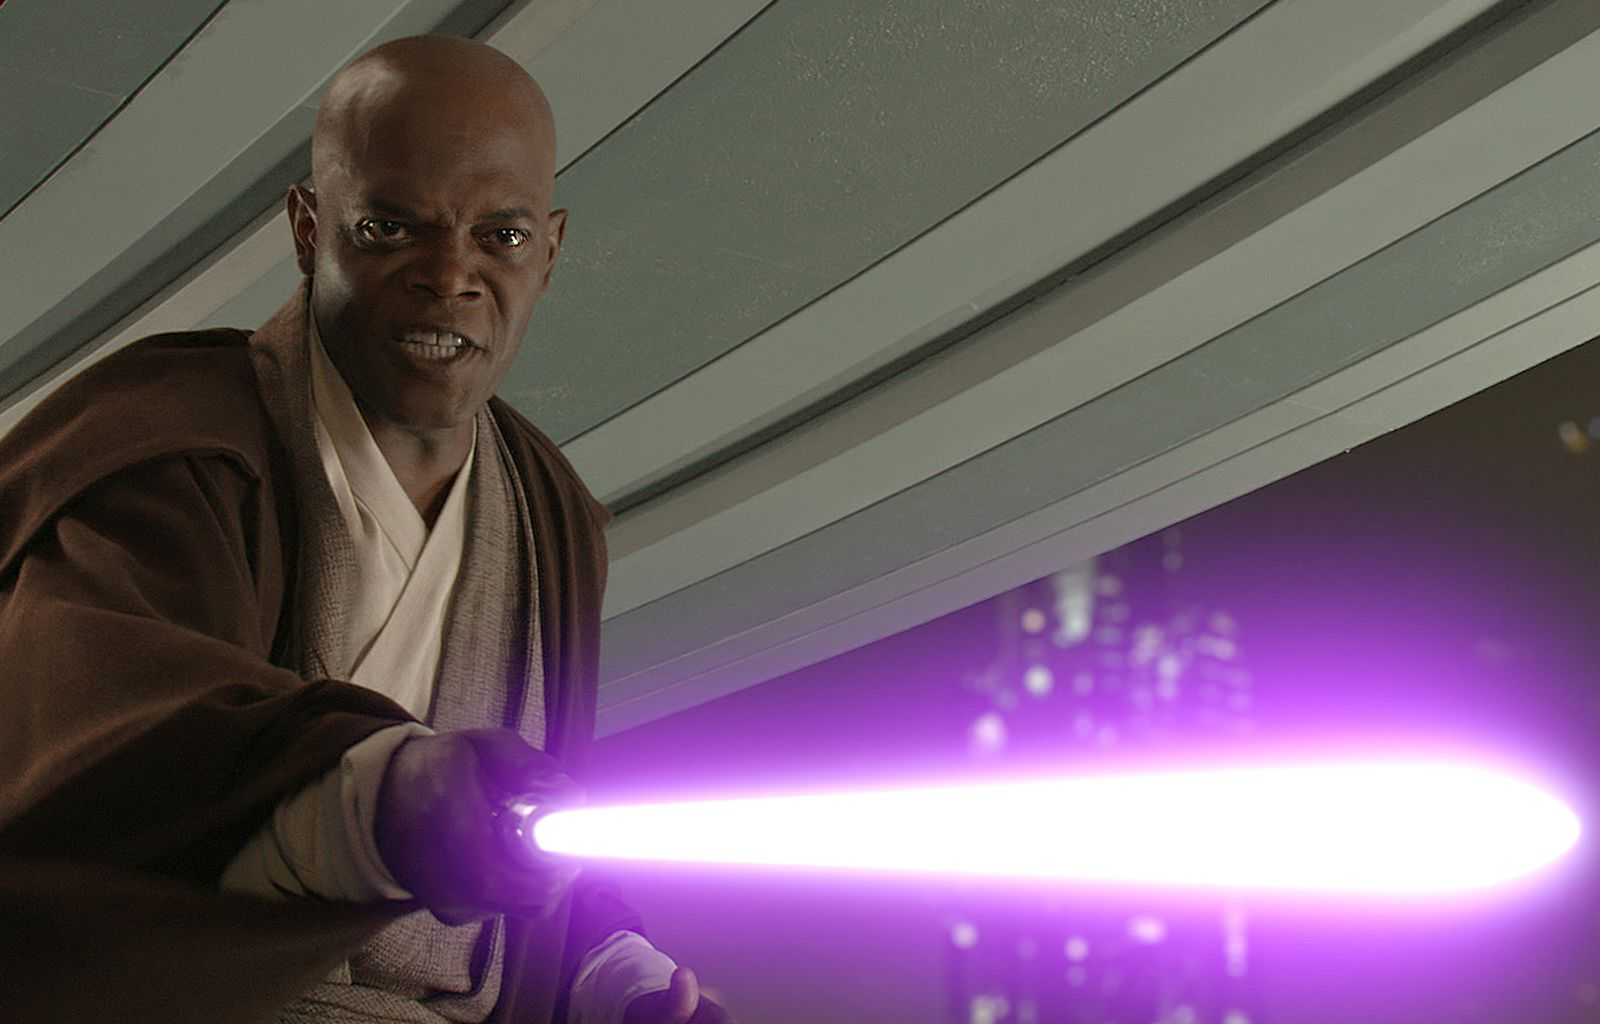 where lightsaber colors come from and what they mean